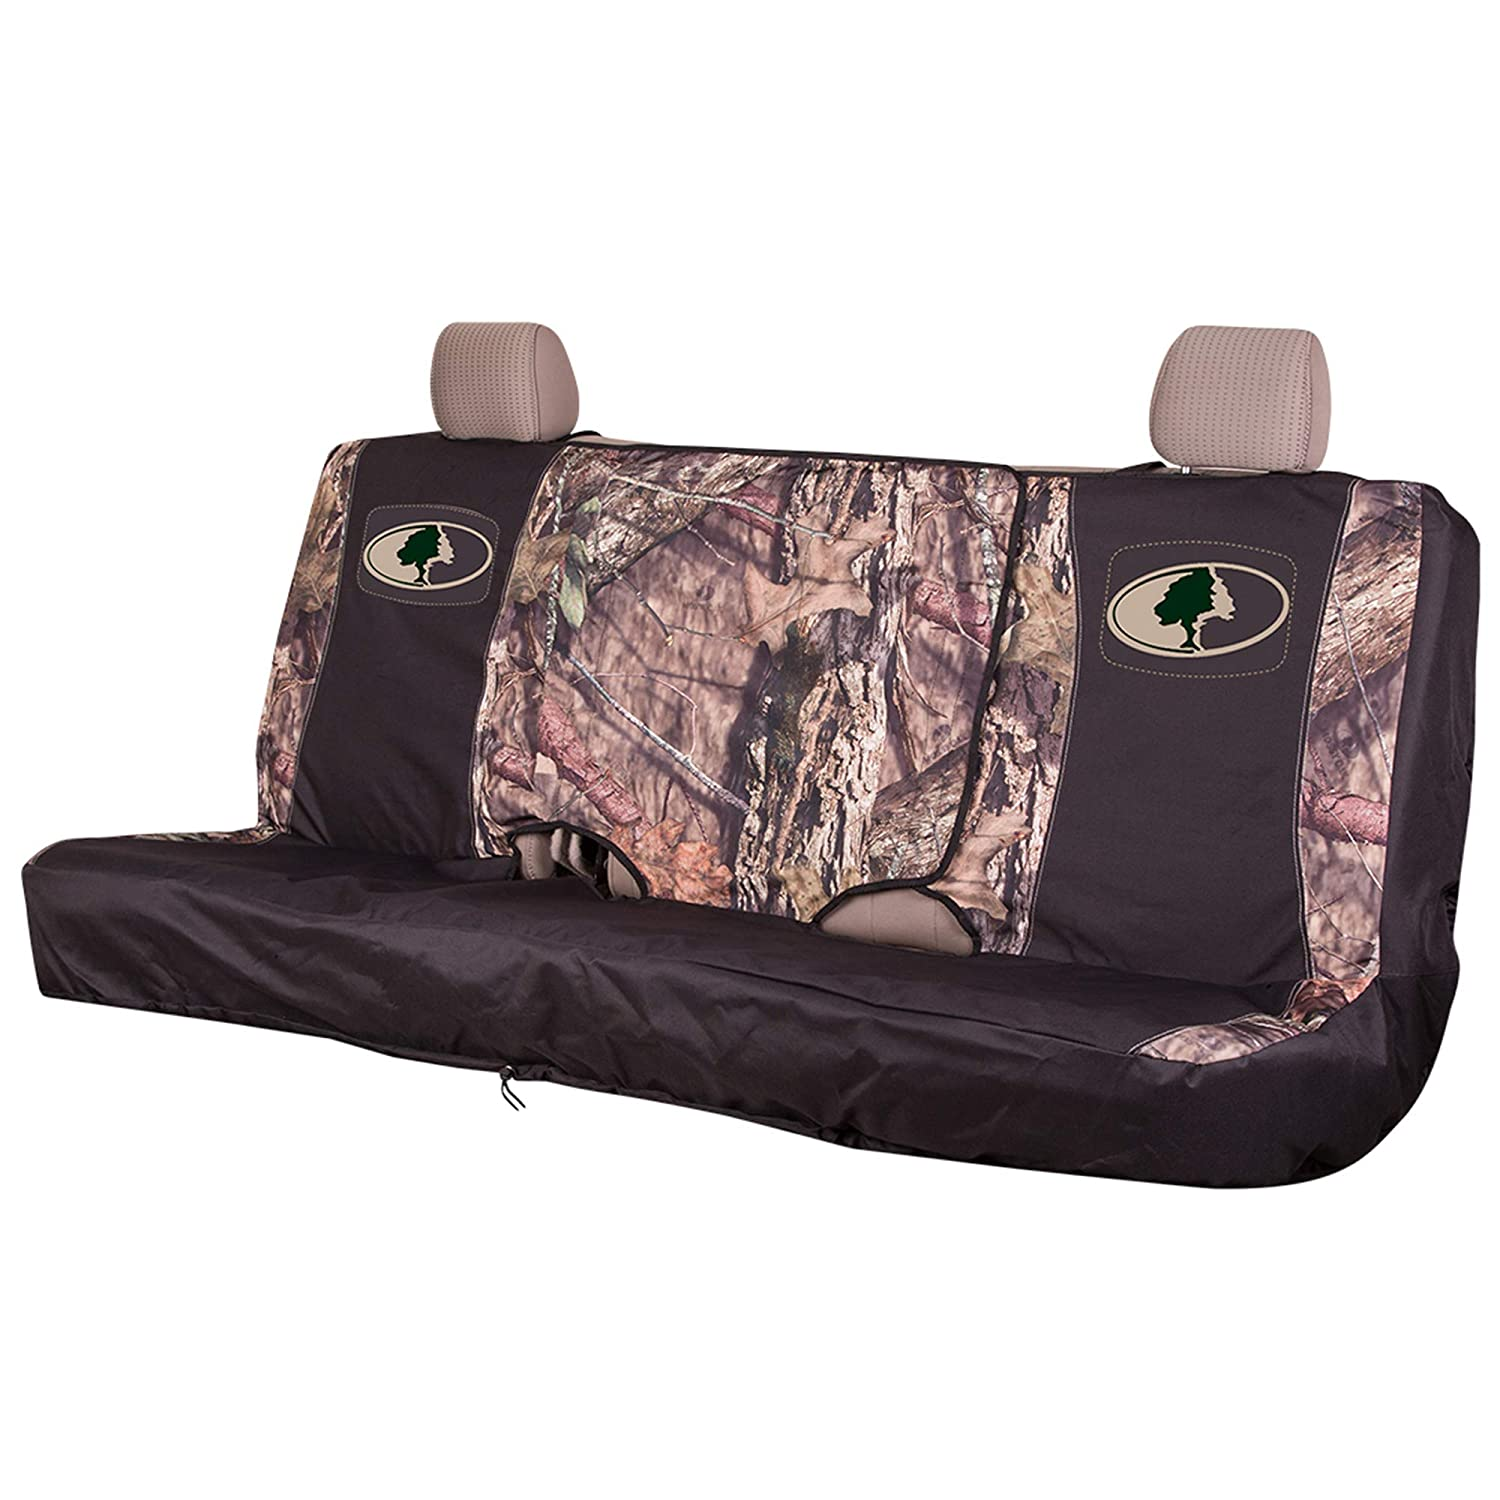 Black//Country Country SPG Mossy Oak Camo Seat Cover Bench Mid Bench MSC5419 Mid Size Signature Products Group